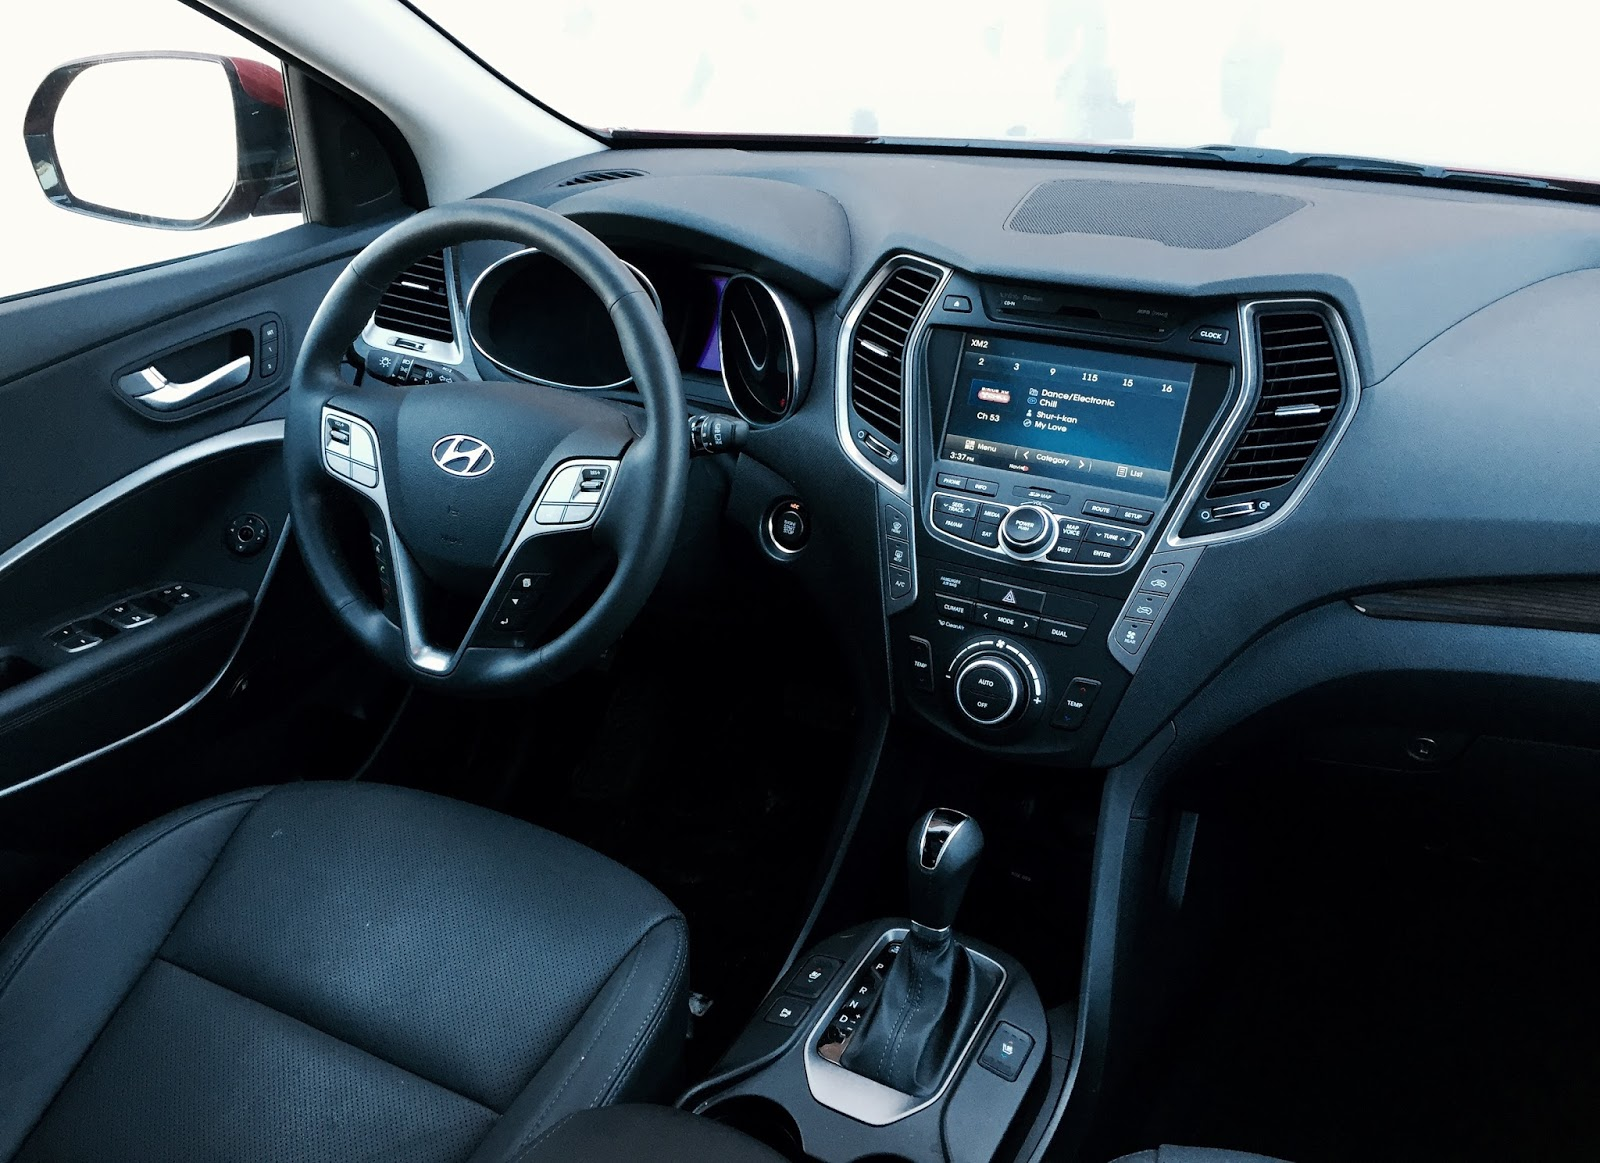 2015 Hyundai Santa Fe XL Limited interior